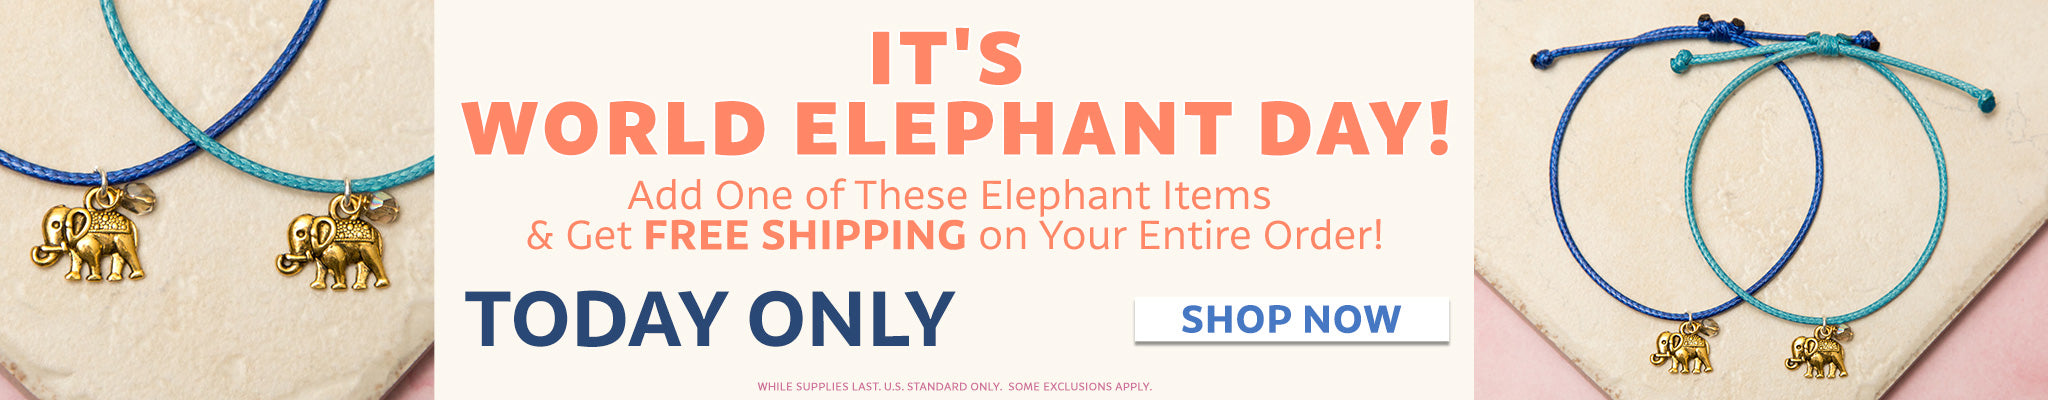 It's World Elephant Day! | Add one of these elephant items and get free shipping on your entire order! | Today Only! | Shop Now!